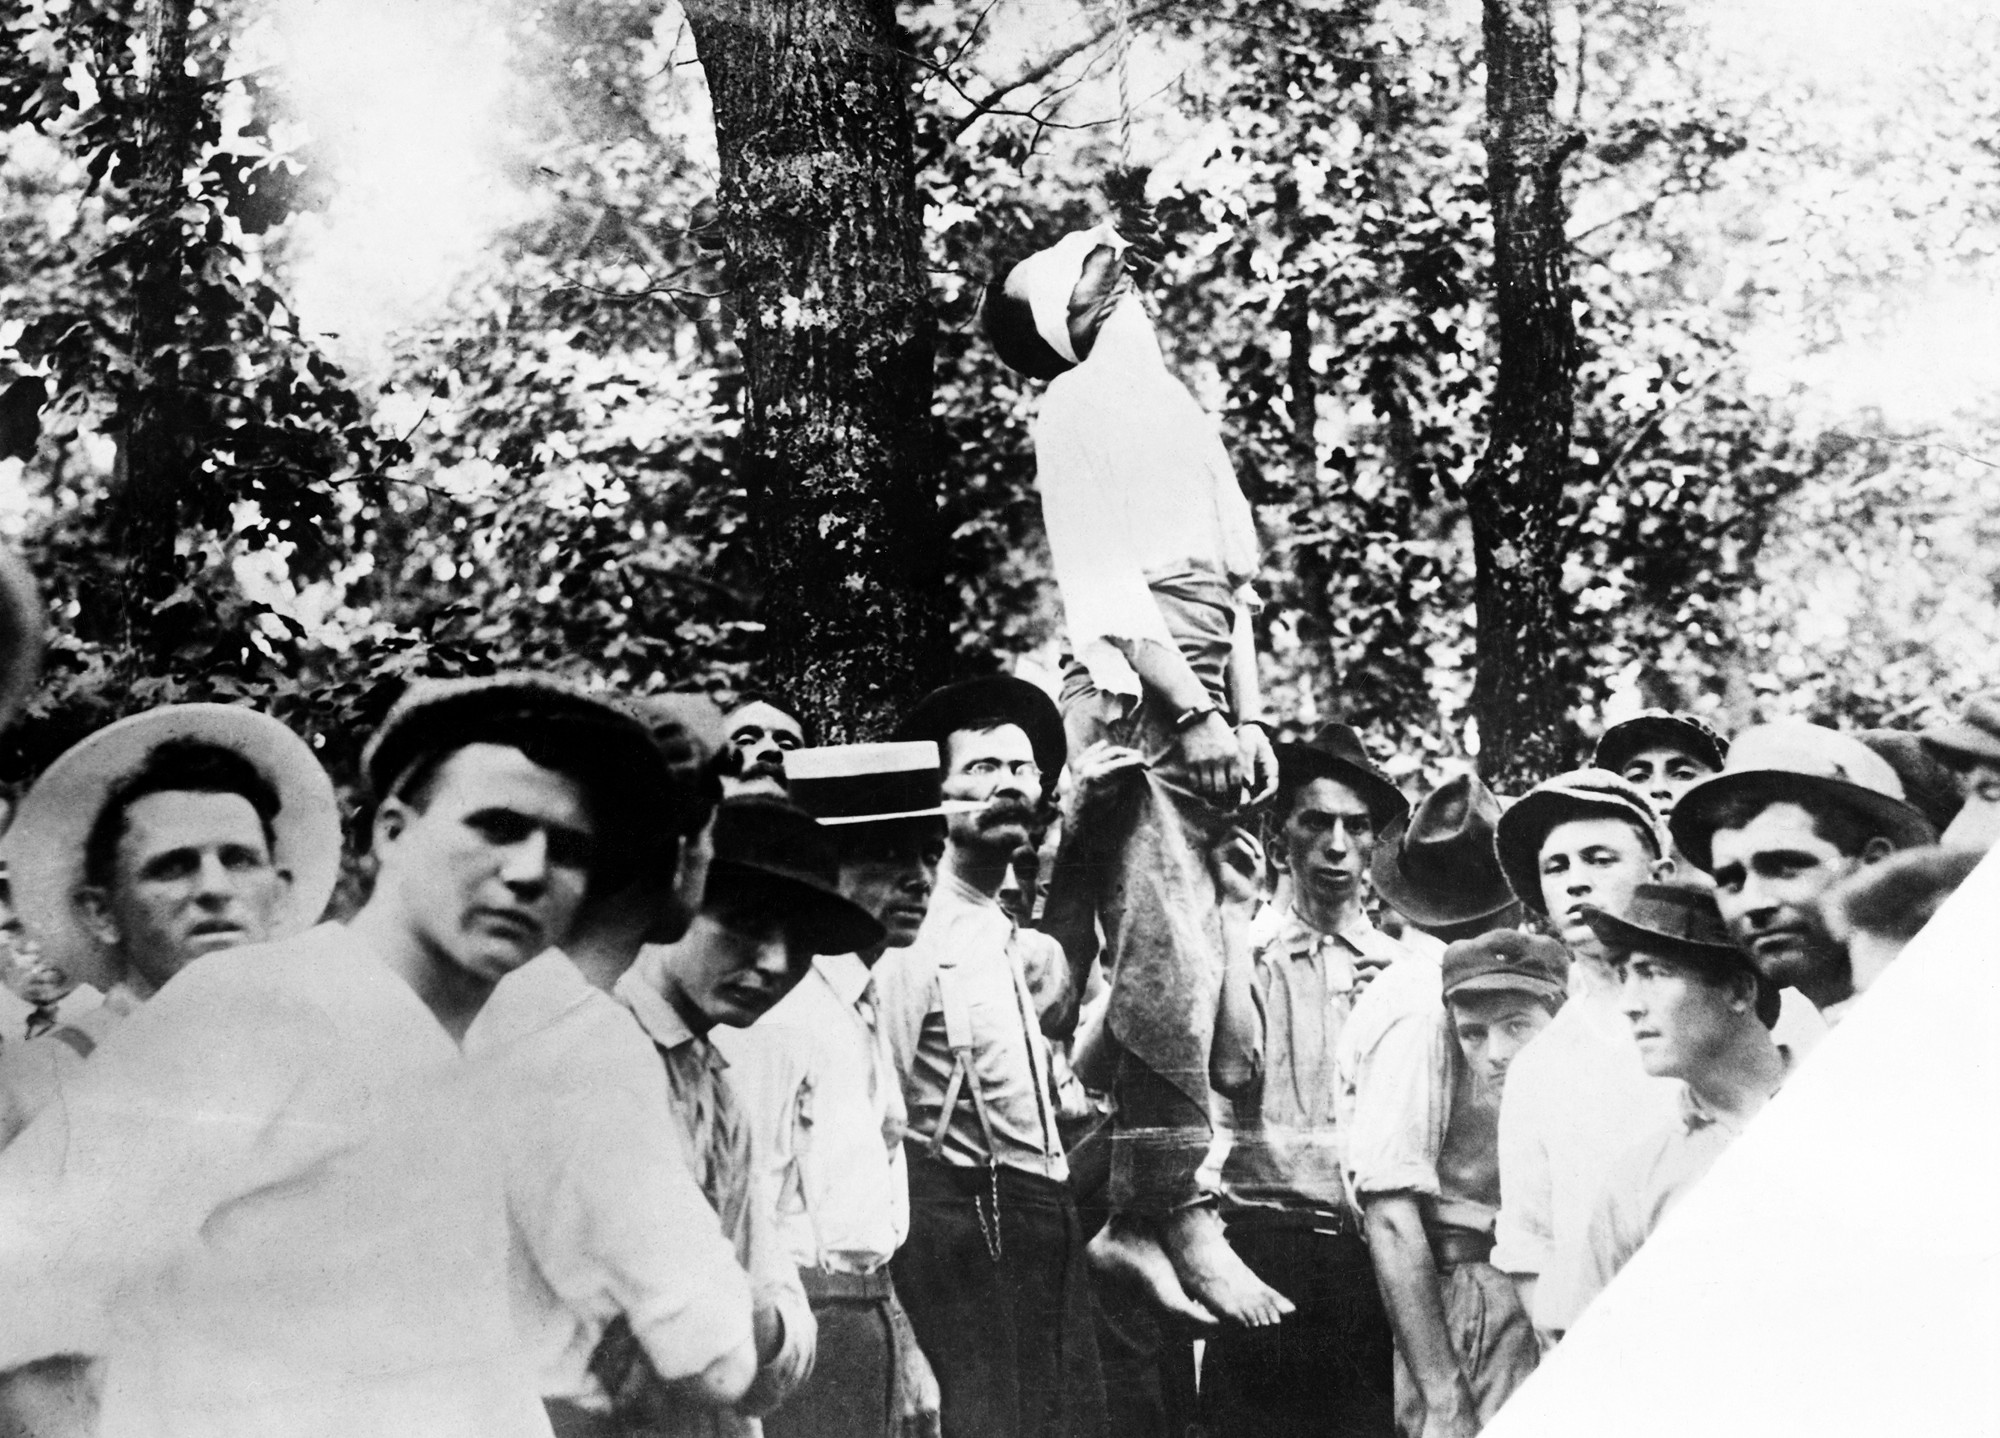 When a Jewish man was lynched for murdering a little girl, the Klan was reborn